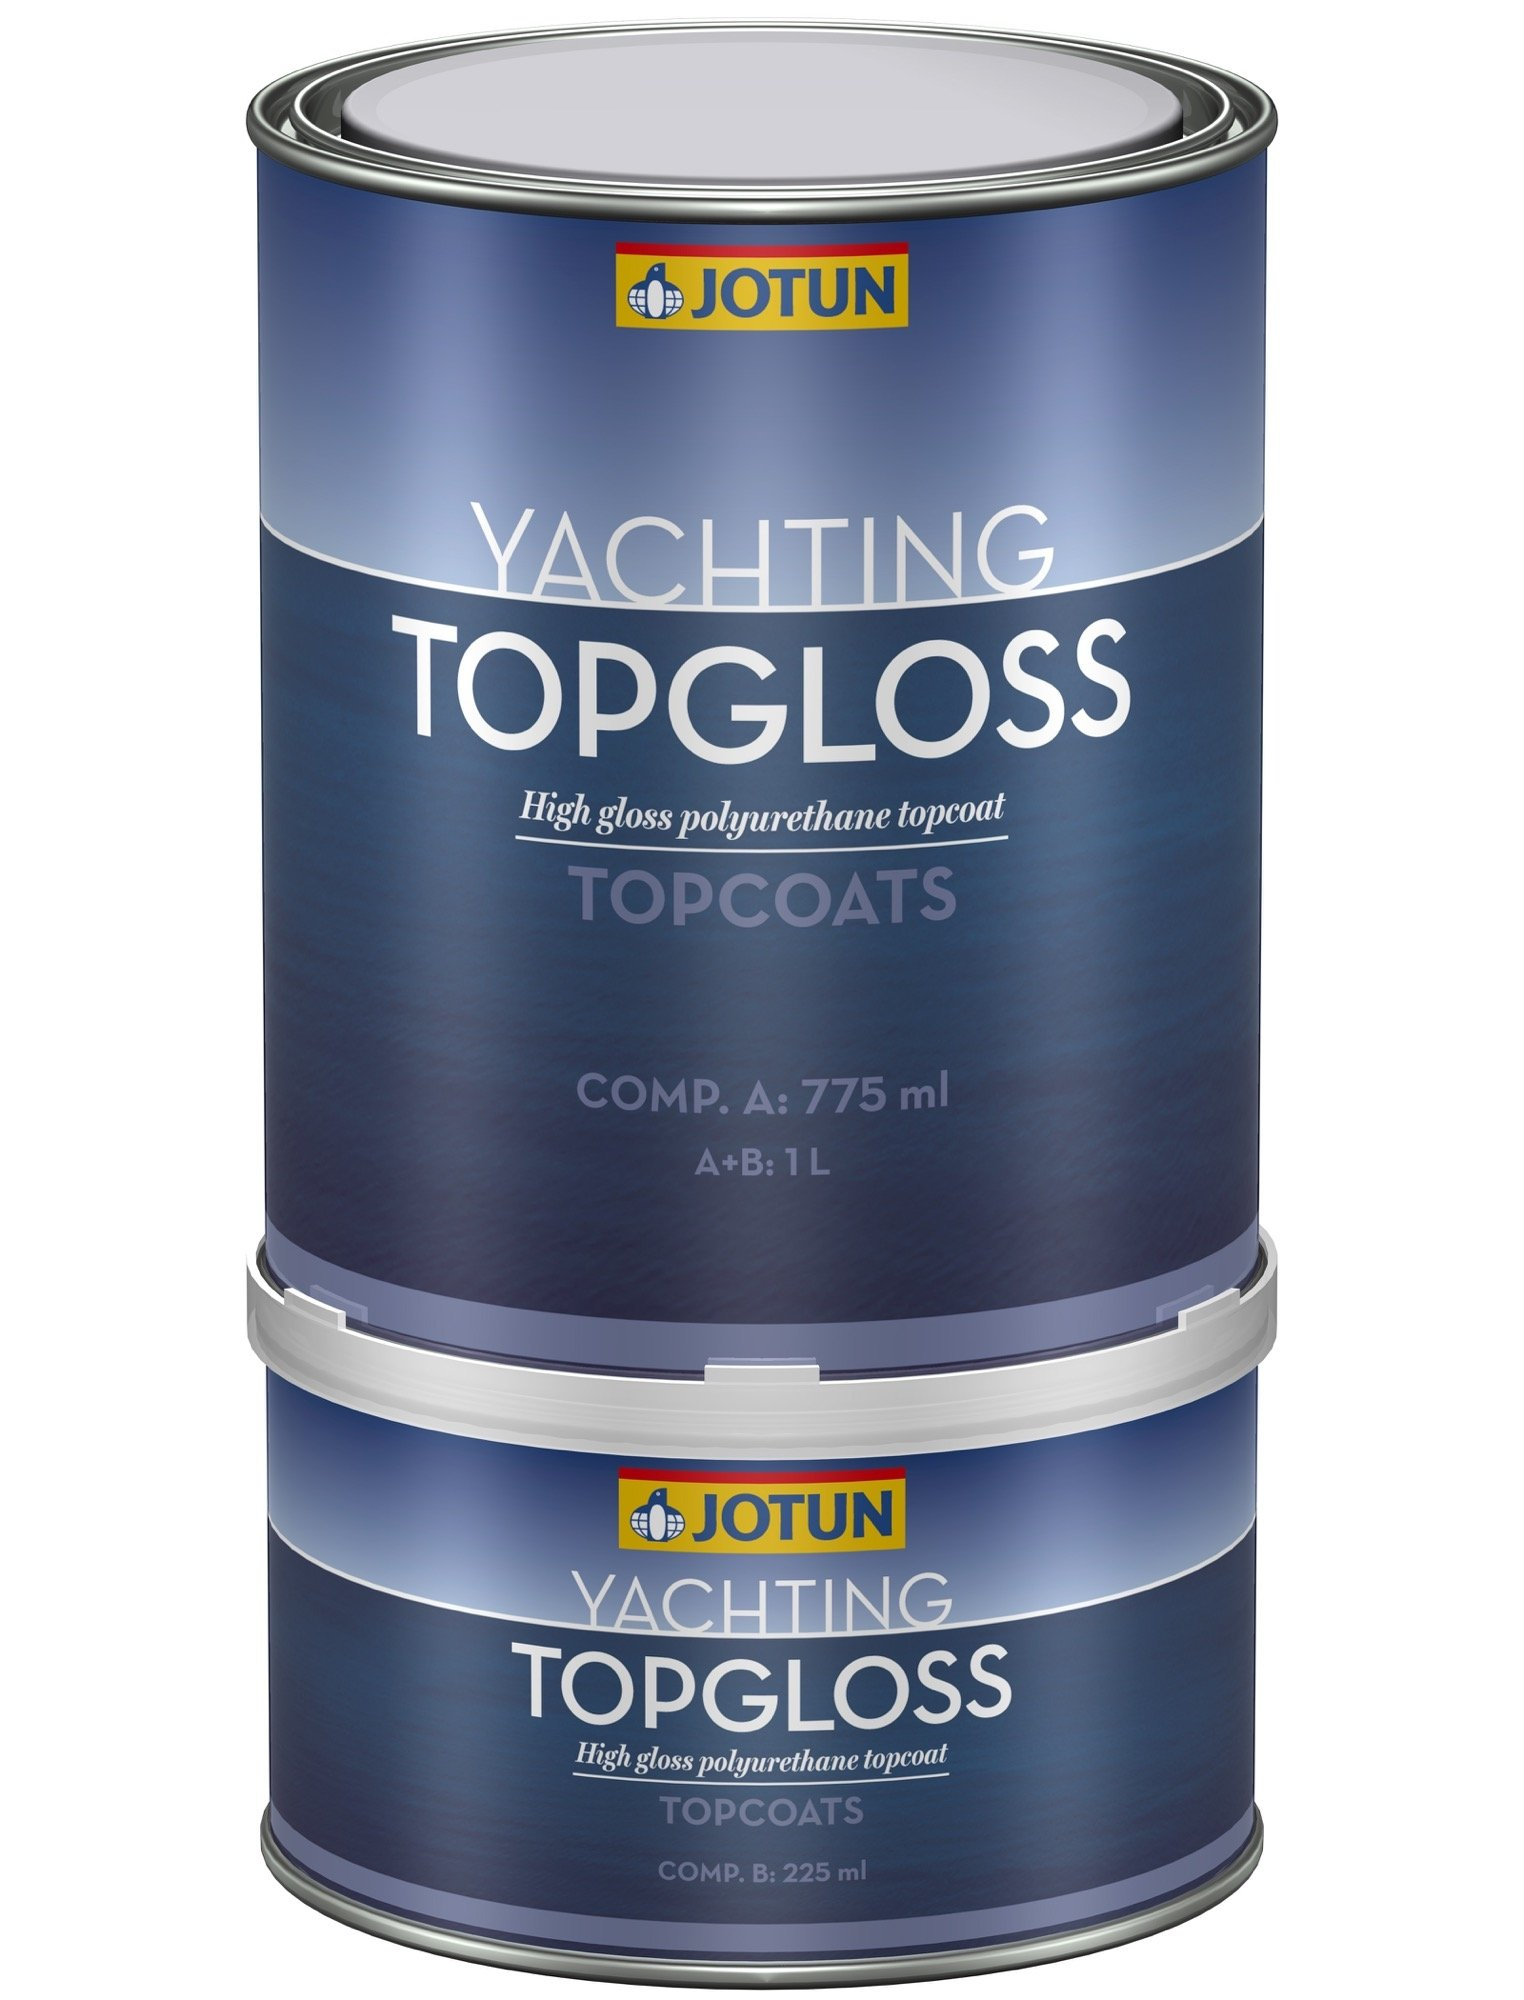 Yachting TopGloss - 6060 Orion Green - 1 L